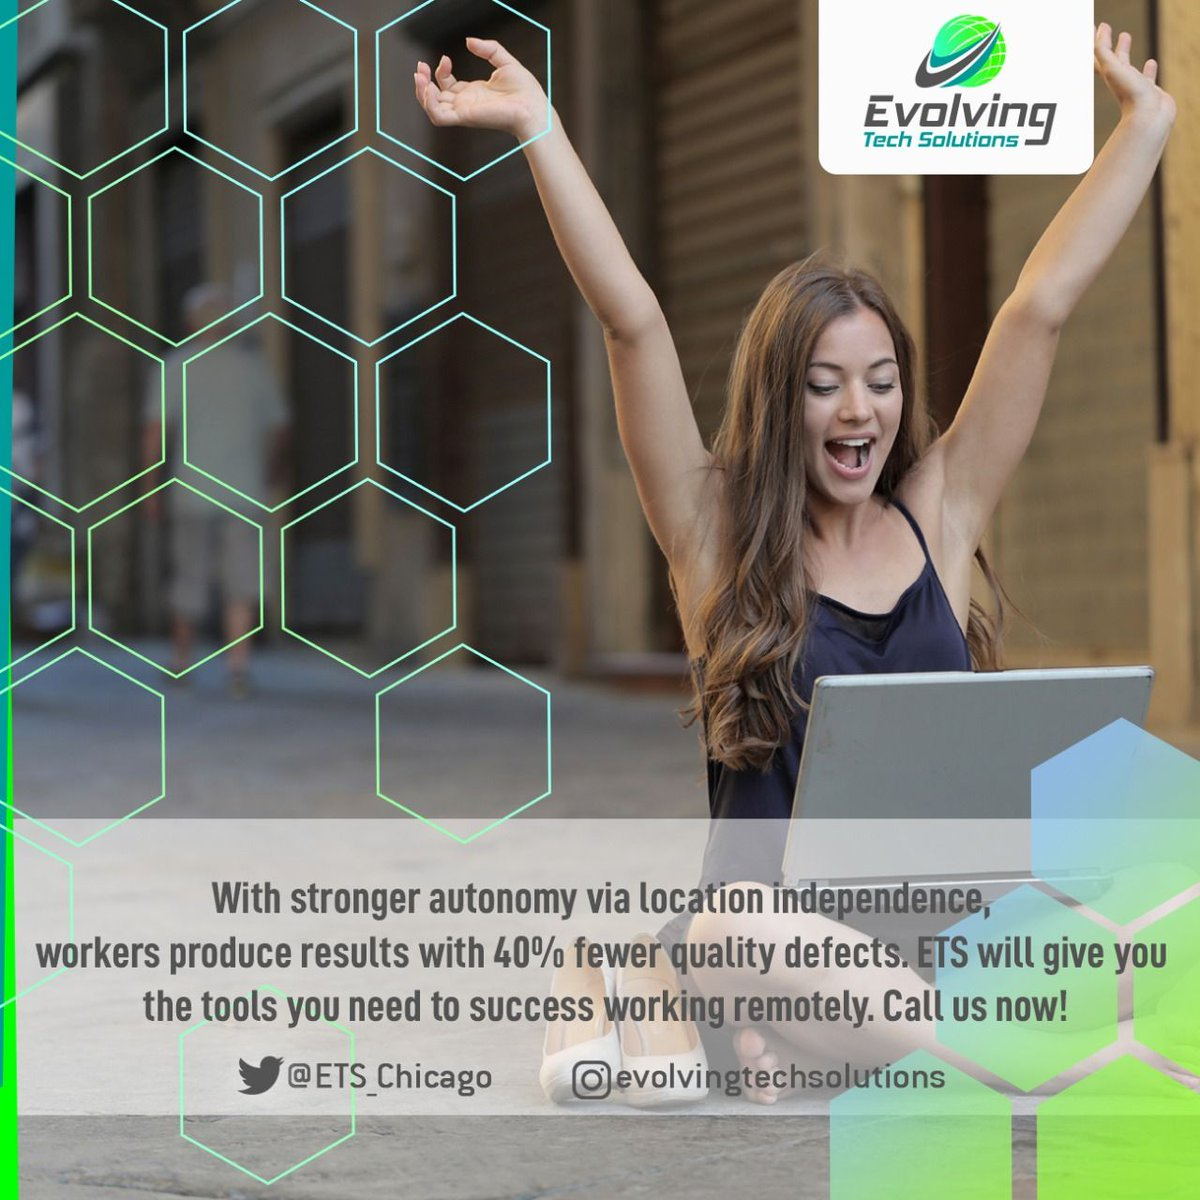 ETS will give you the tools you need to success working remotely. Call us now! #chicago #workfromhome #socialdistancing #stayproductive #businessowners #businessstrategy #businessplan #productivity #WFH #remoteaccess #remotework #smallbusiness #staysafepic.twitter.com/Va0hvBNQbk